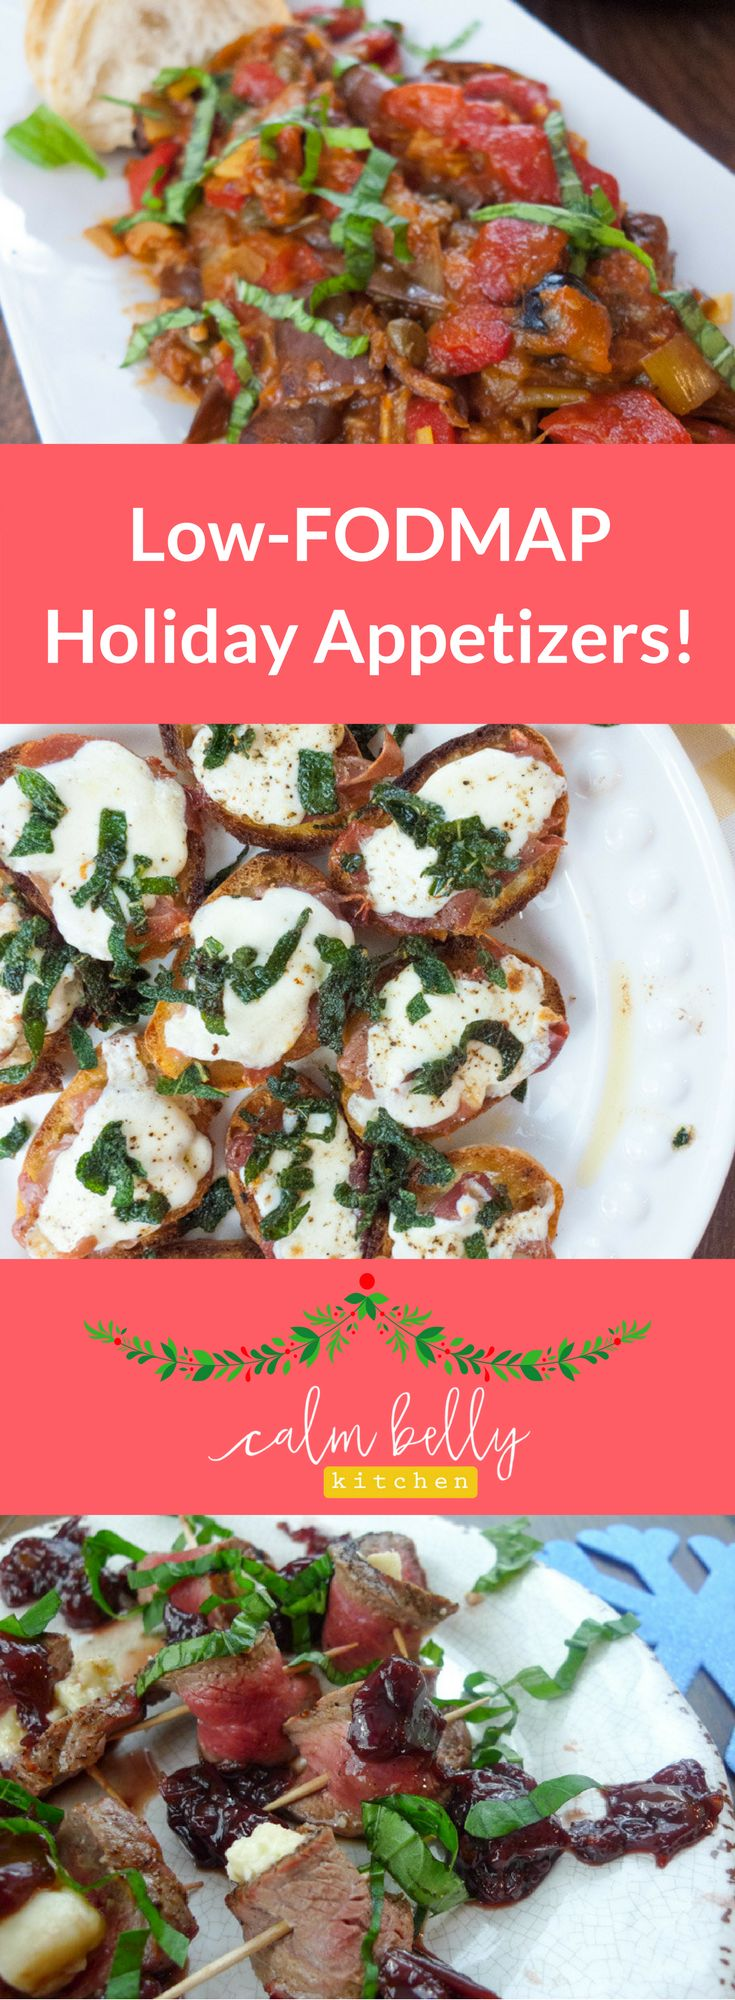 3 Low FODMAP Holiday Appetizer Recipes 119 best